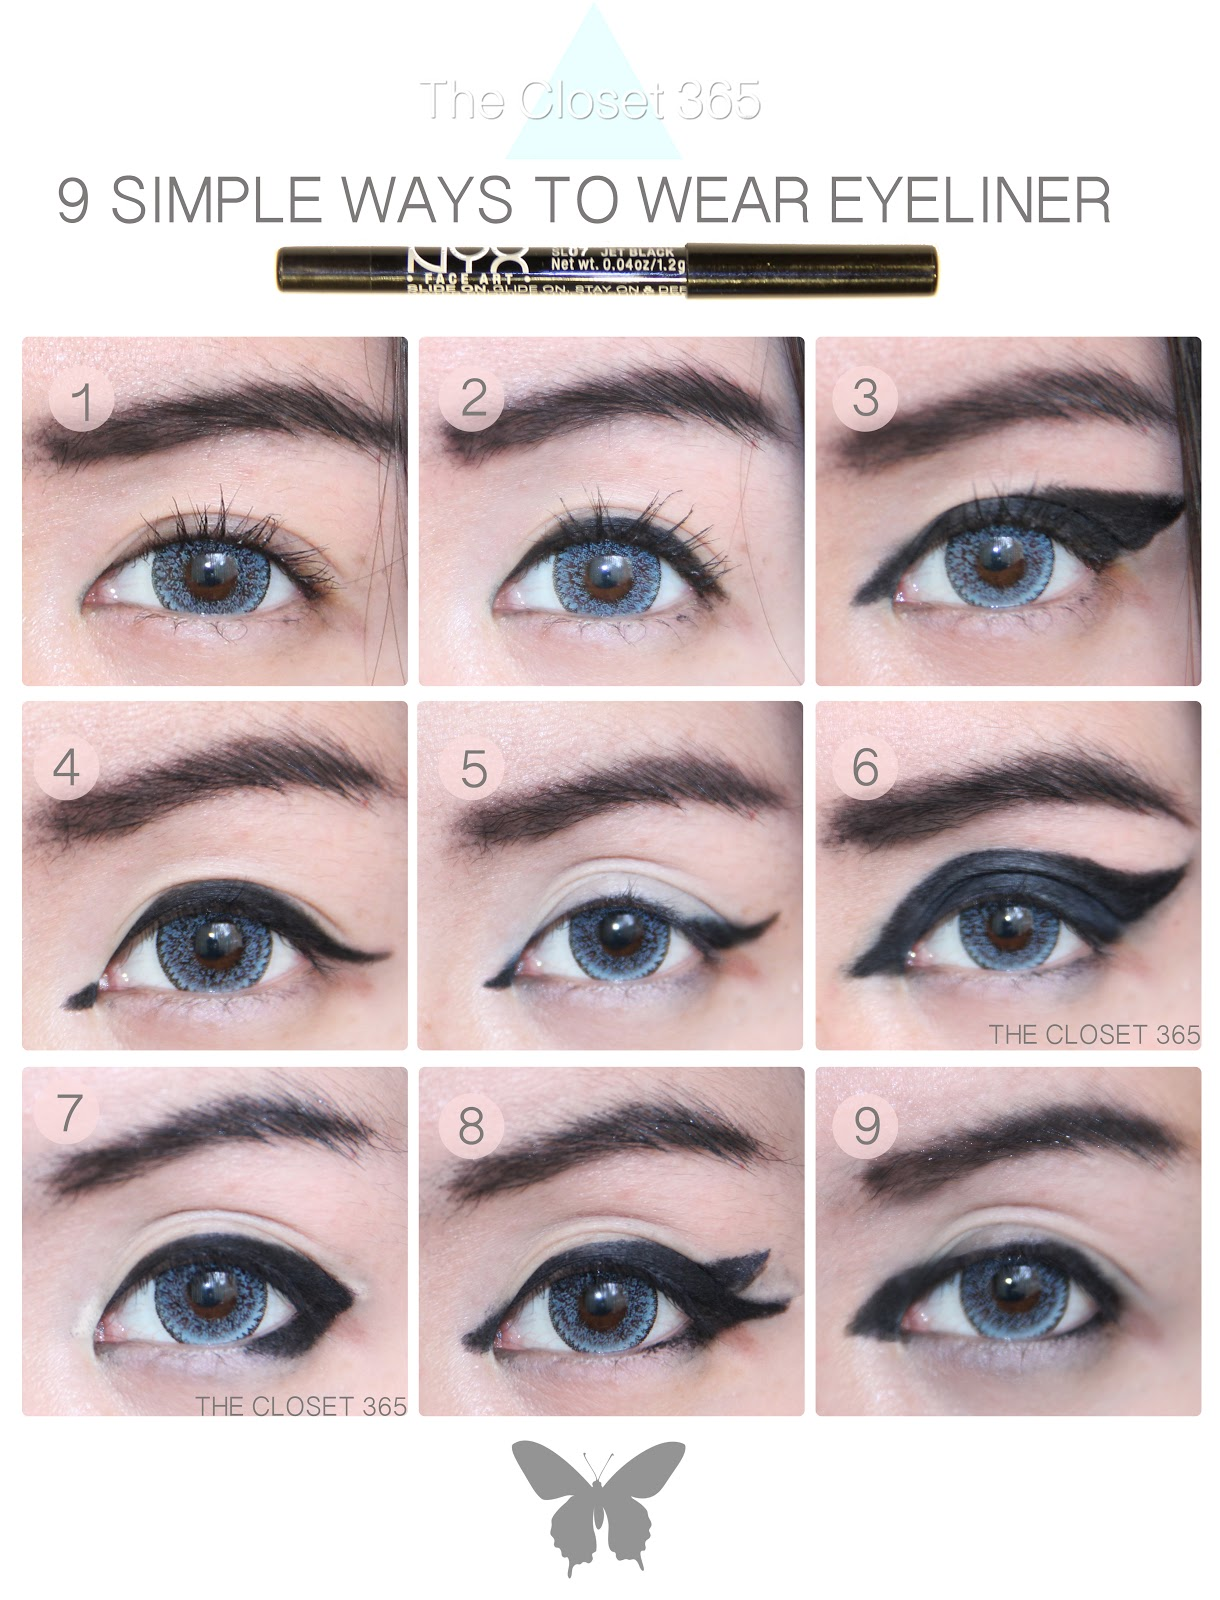 9 Simple Easter Nail Art Designs With Pictures: The Closet 365: 9 Simple Ways To Wear Eyeliner